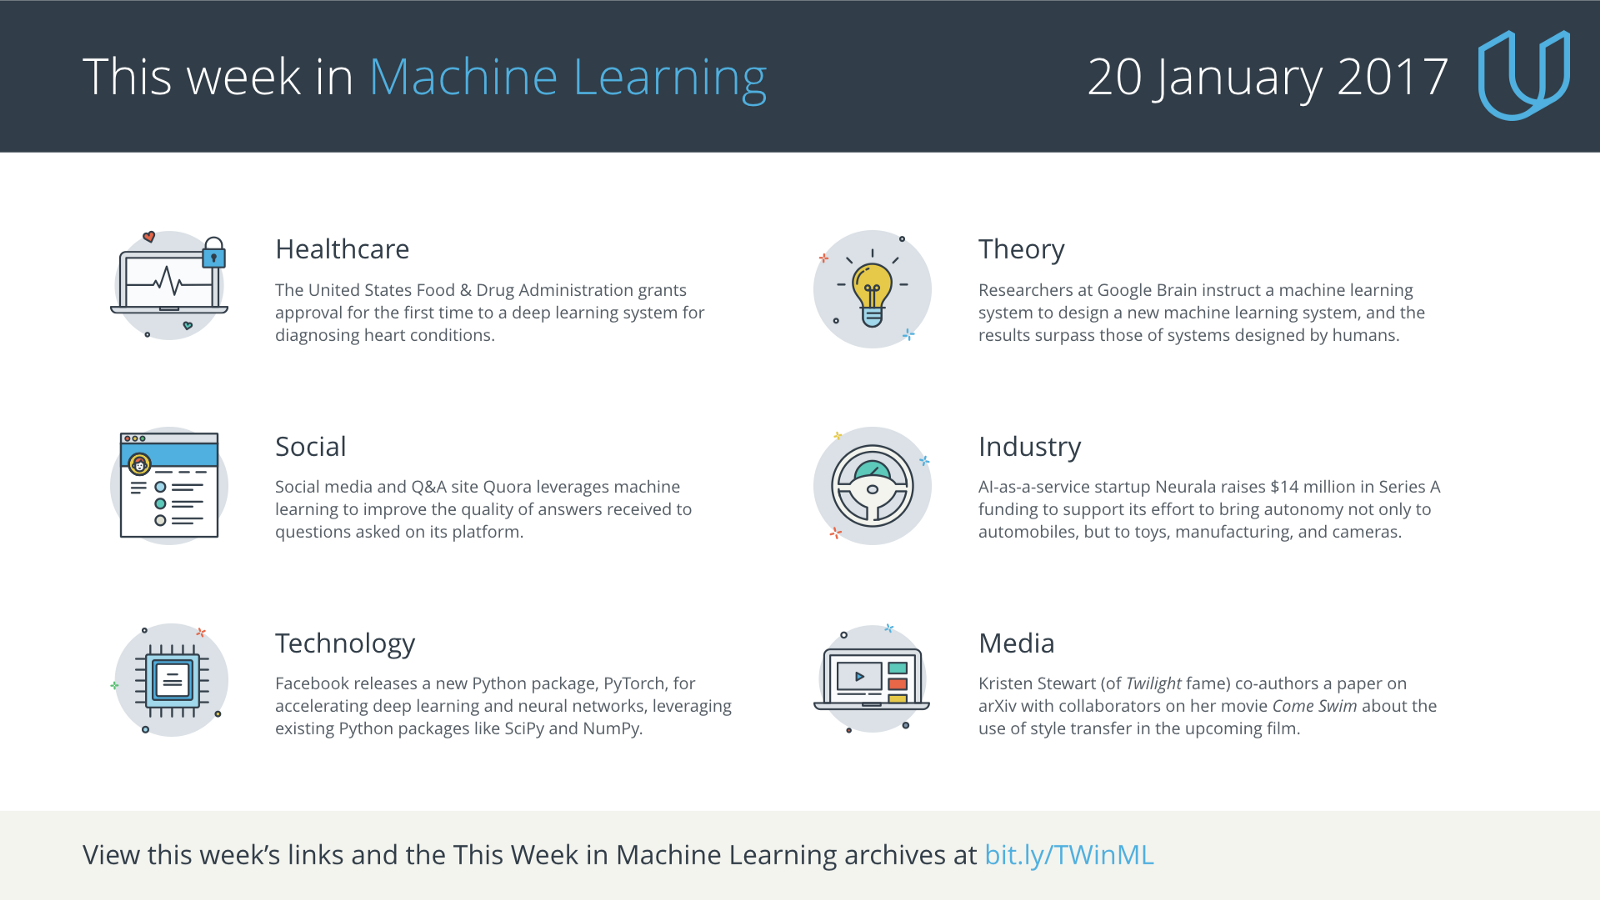 This Week in Machine Learning, 20 January 2017